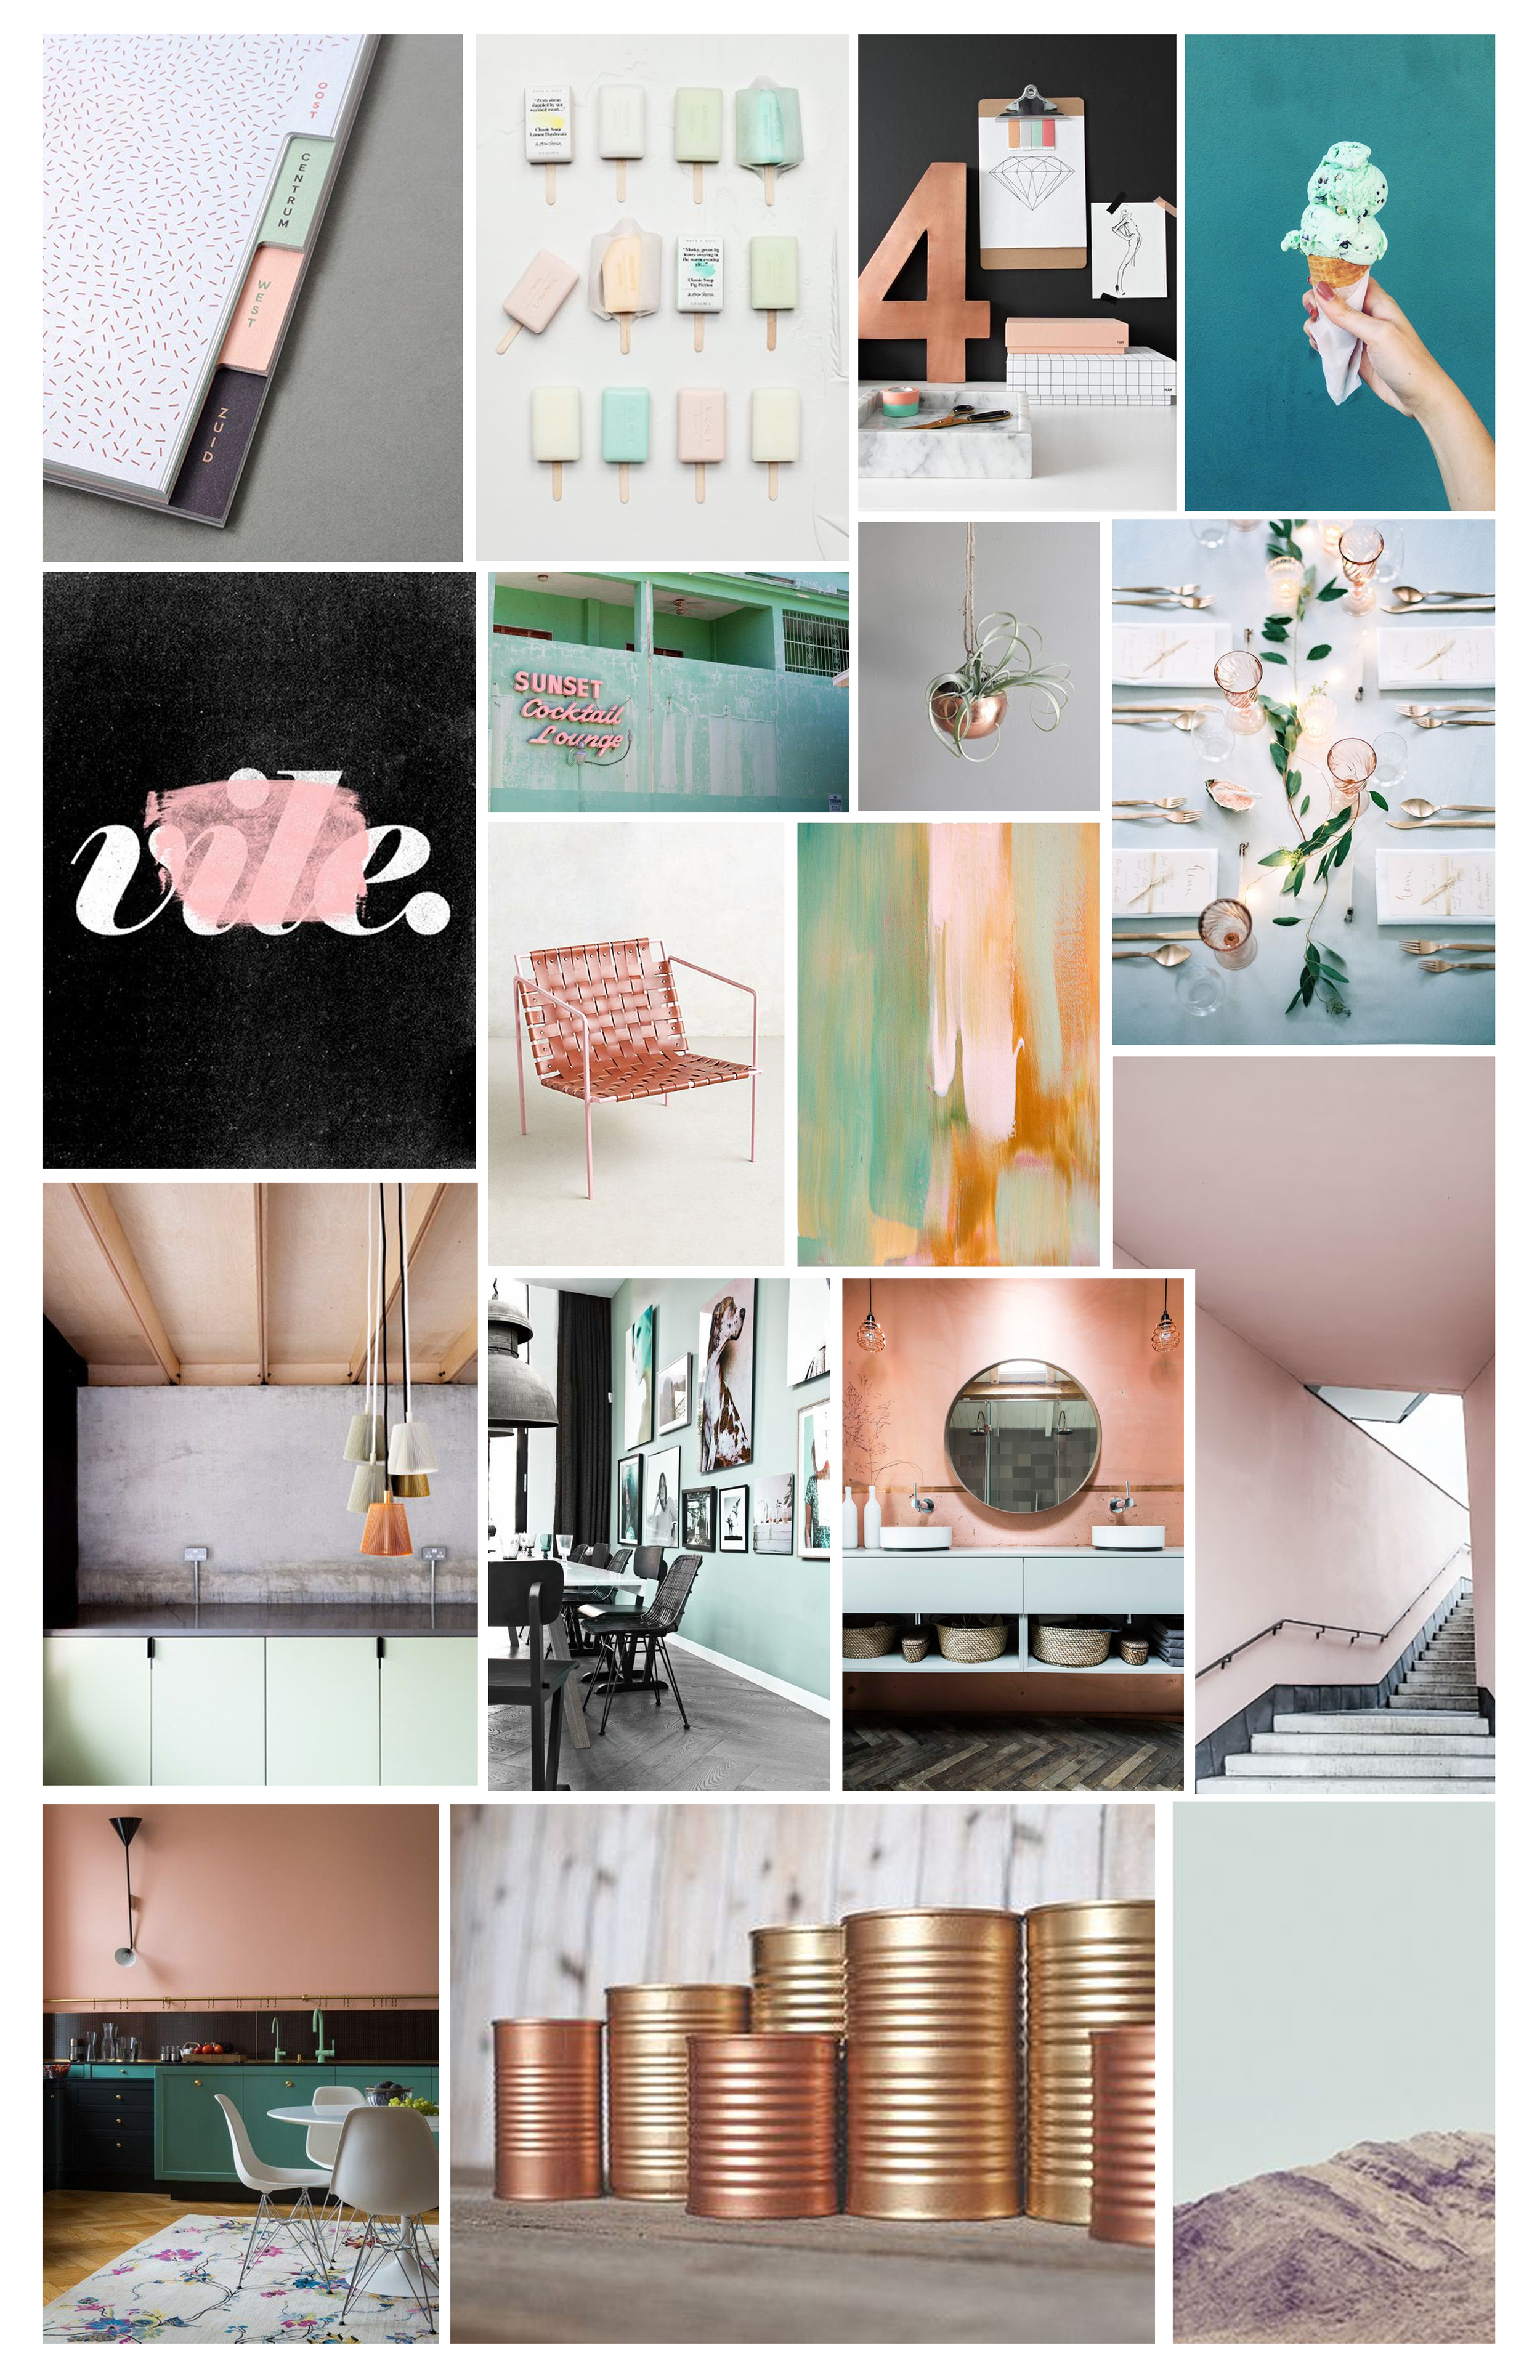 WEEKLY INSPIRATION WITH MONDAY MOOD BOARD | THE PAPER CURATOR